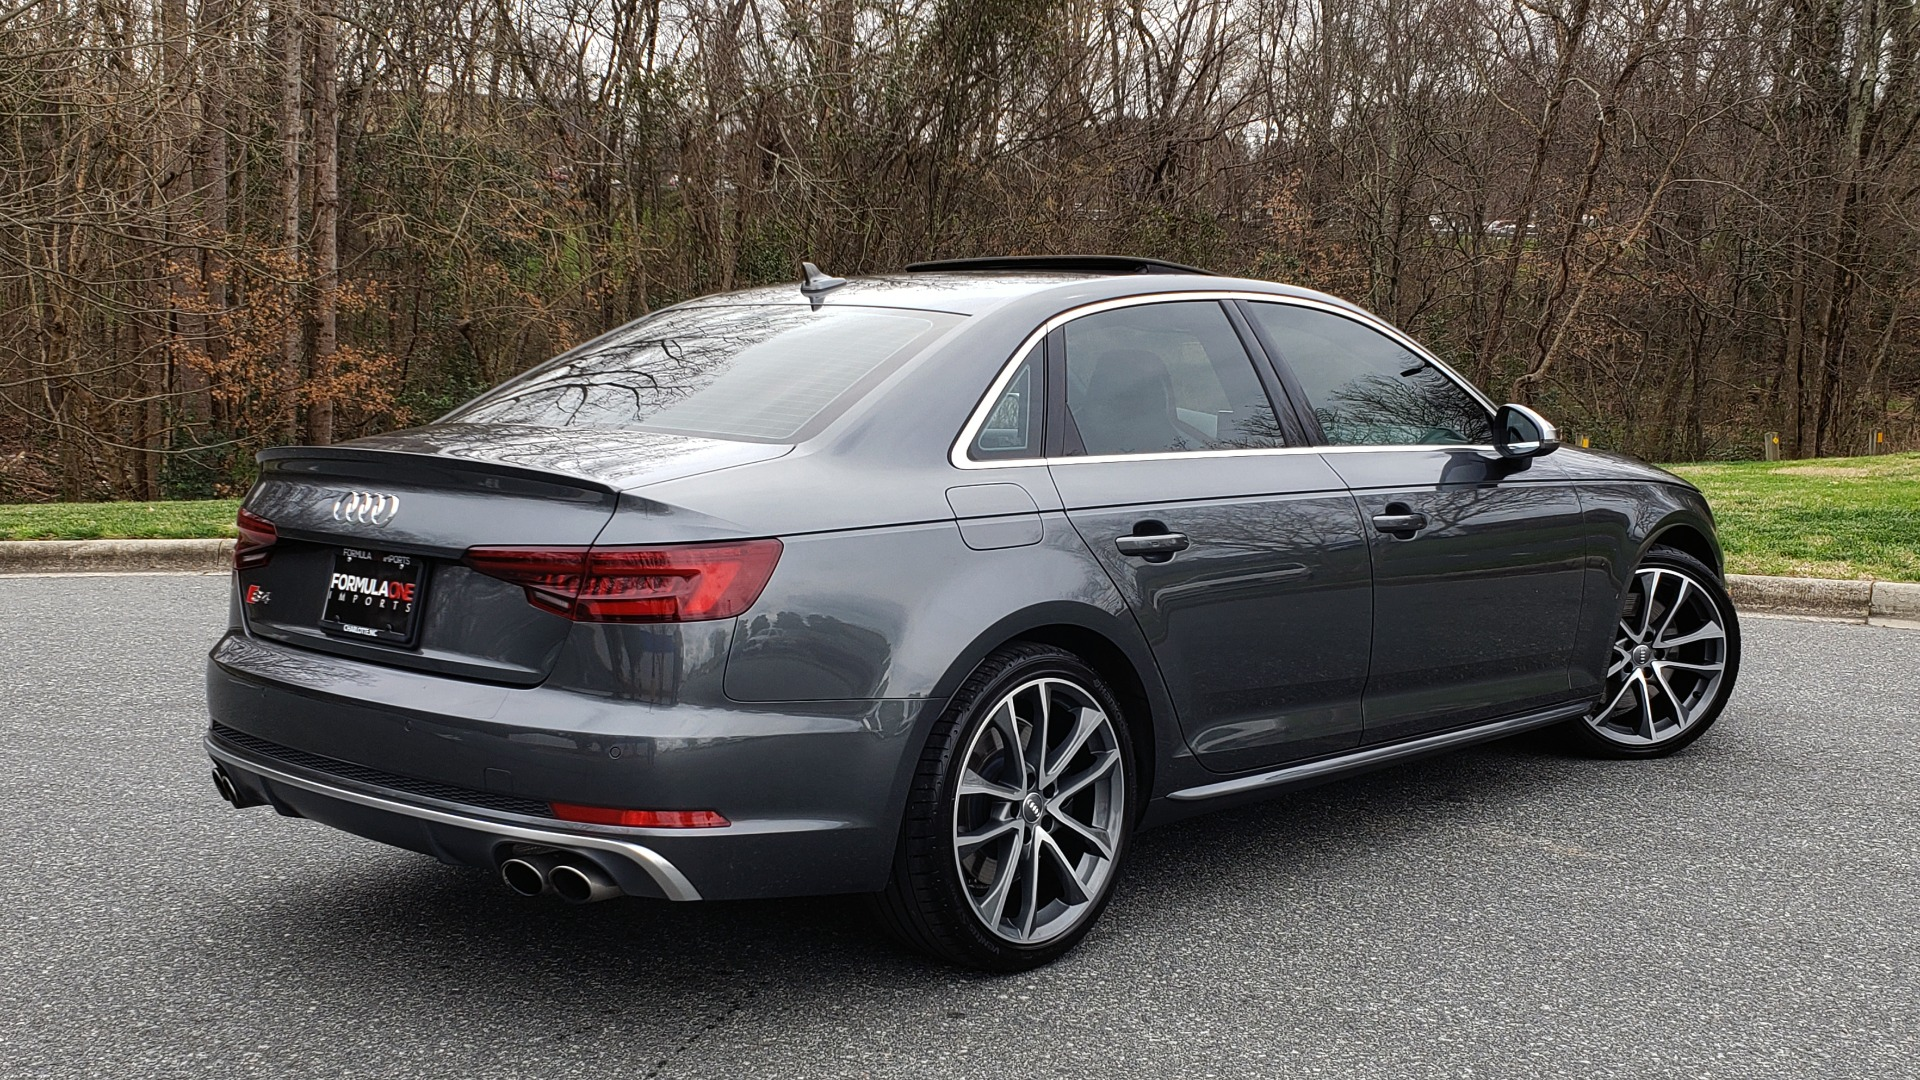 Used 2019 Audi S4 PREMIUM PLUS / AWD / NAV / SUNROOF / B&O SOUND / REARVIEW for sale Sold at Formula Imports in Charlotte NC 28227 6